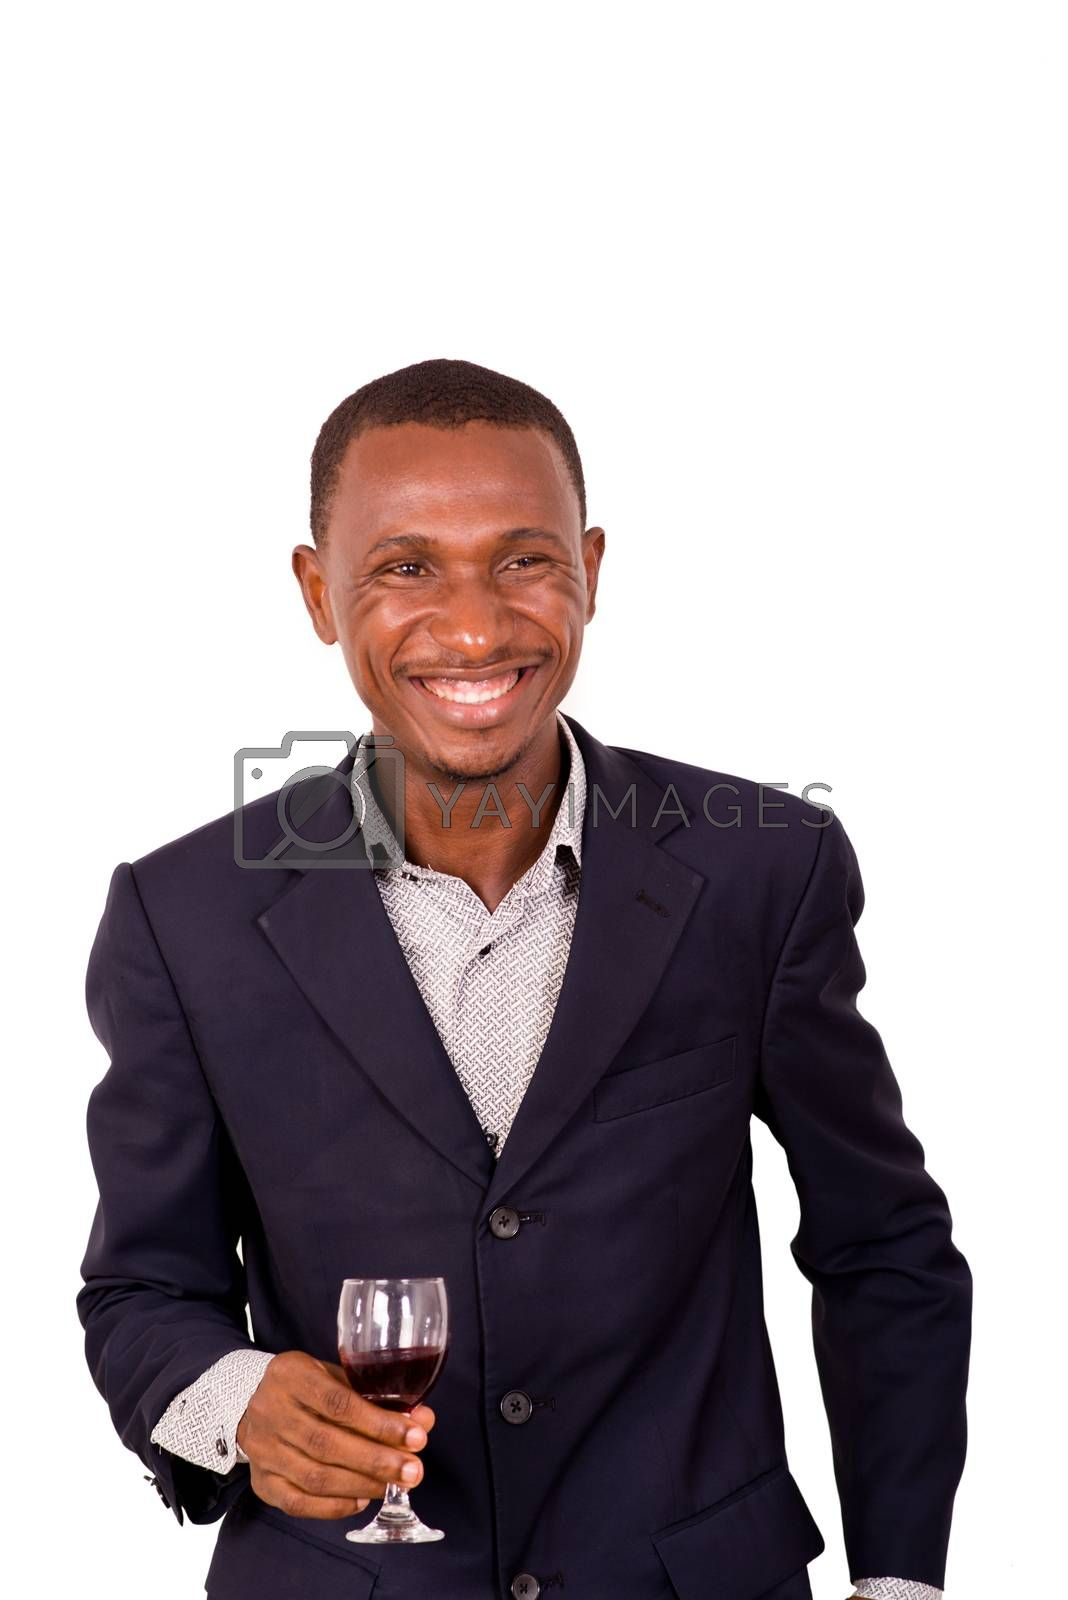 portrait of young happy businessman in suit standing on white background.